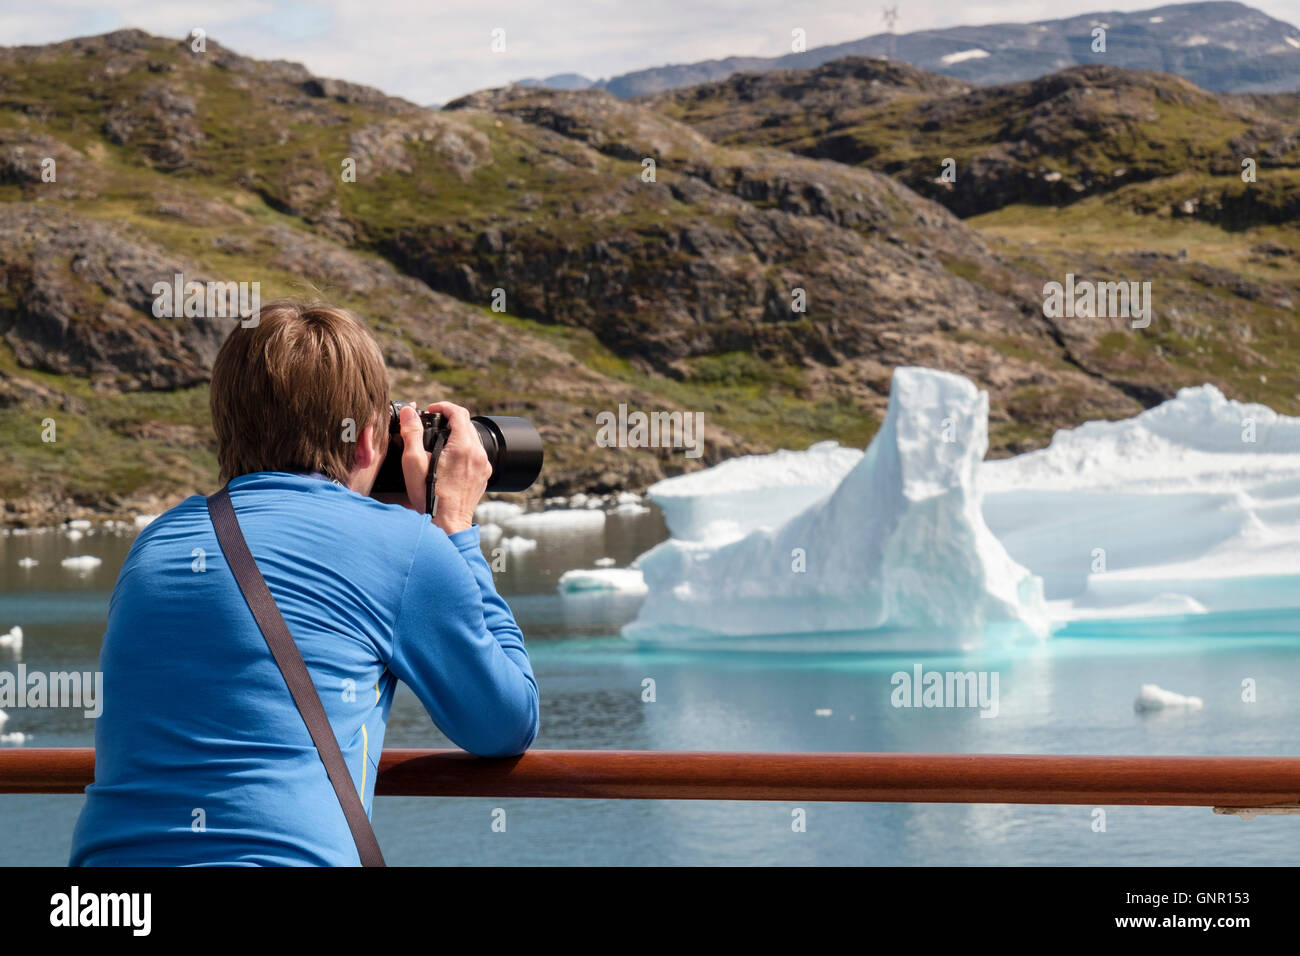 Alamy travel photographer passenger photographing icebergs from cruise boat deck in Tunulliarfik fjord in summer. - Stock Image